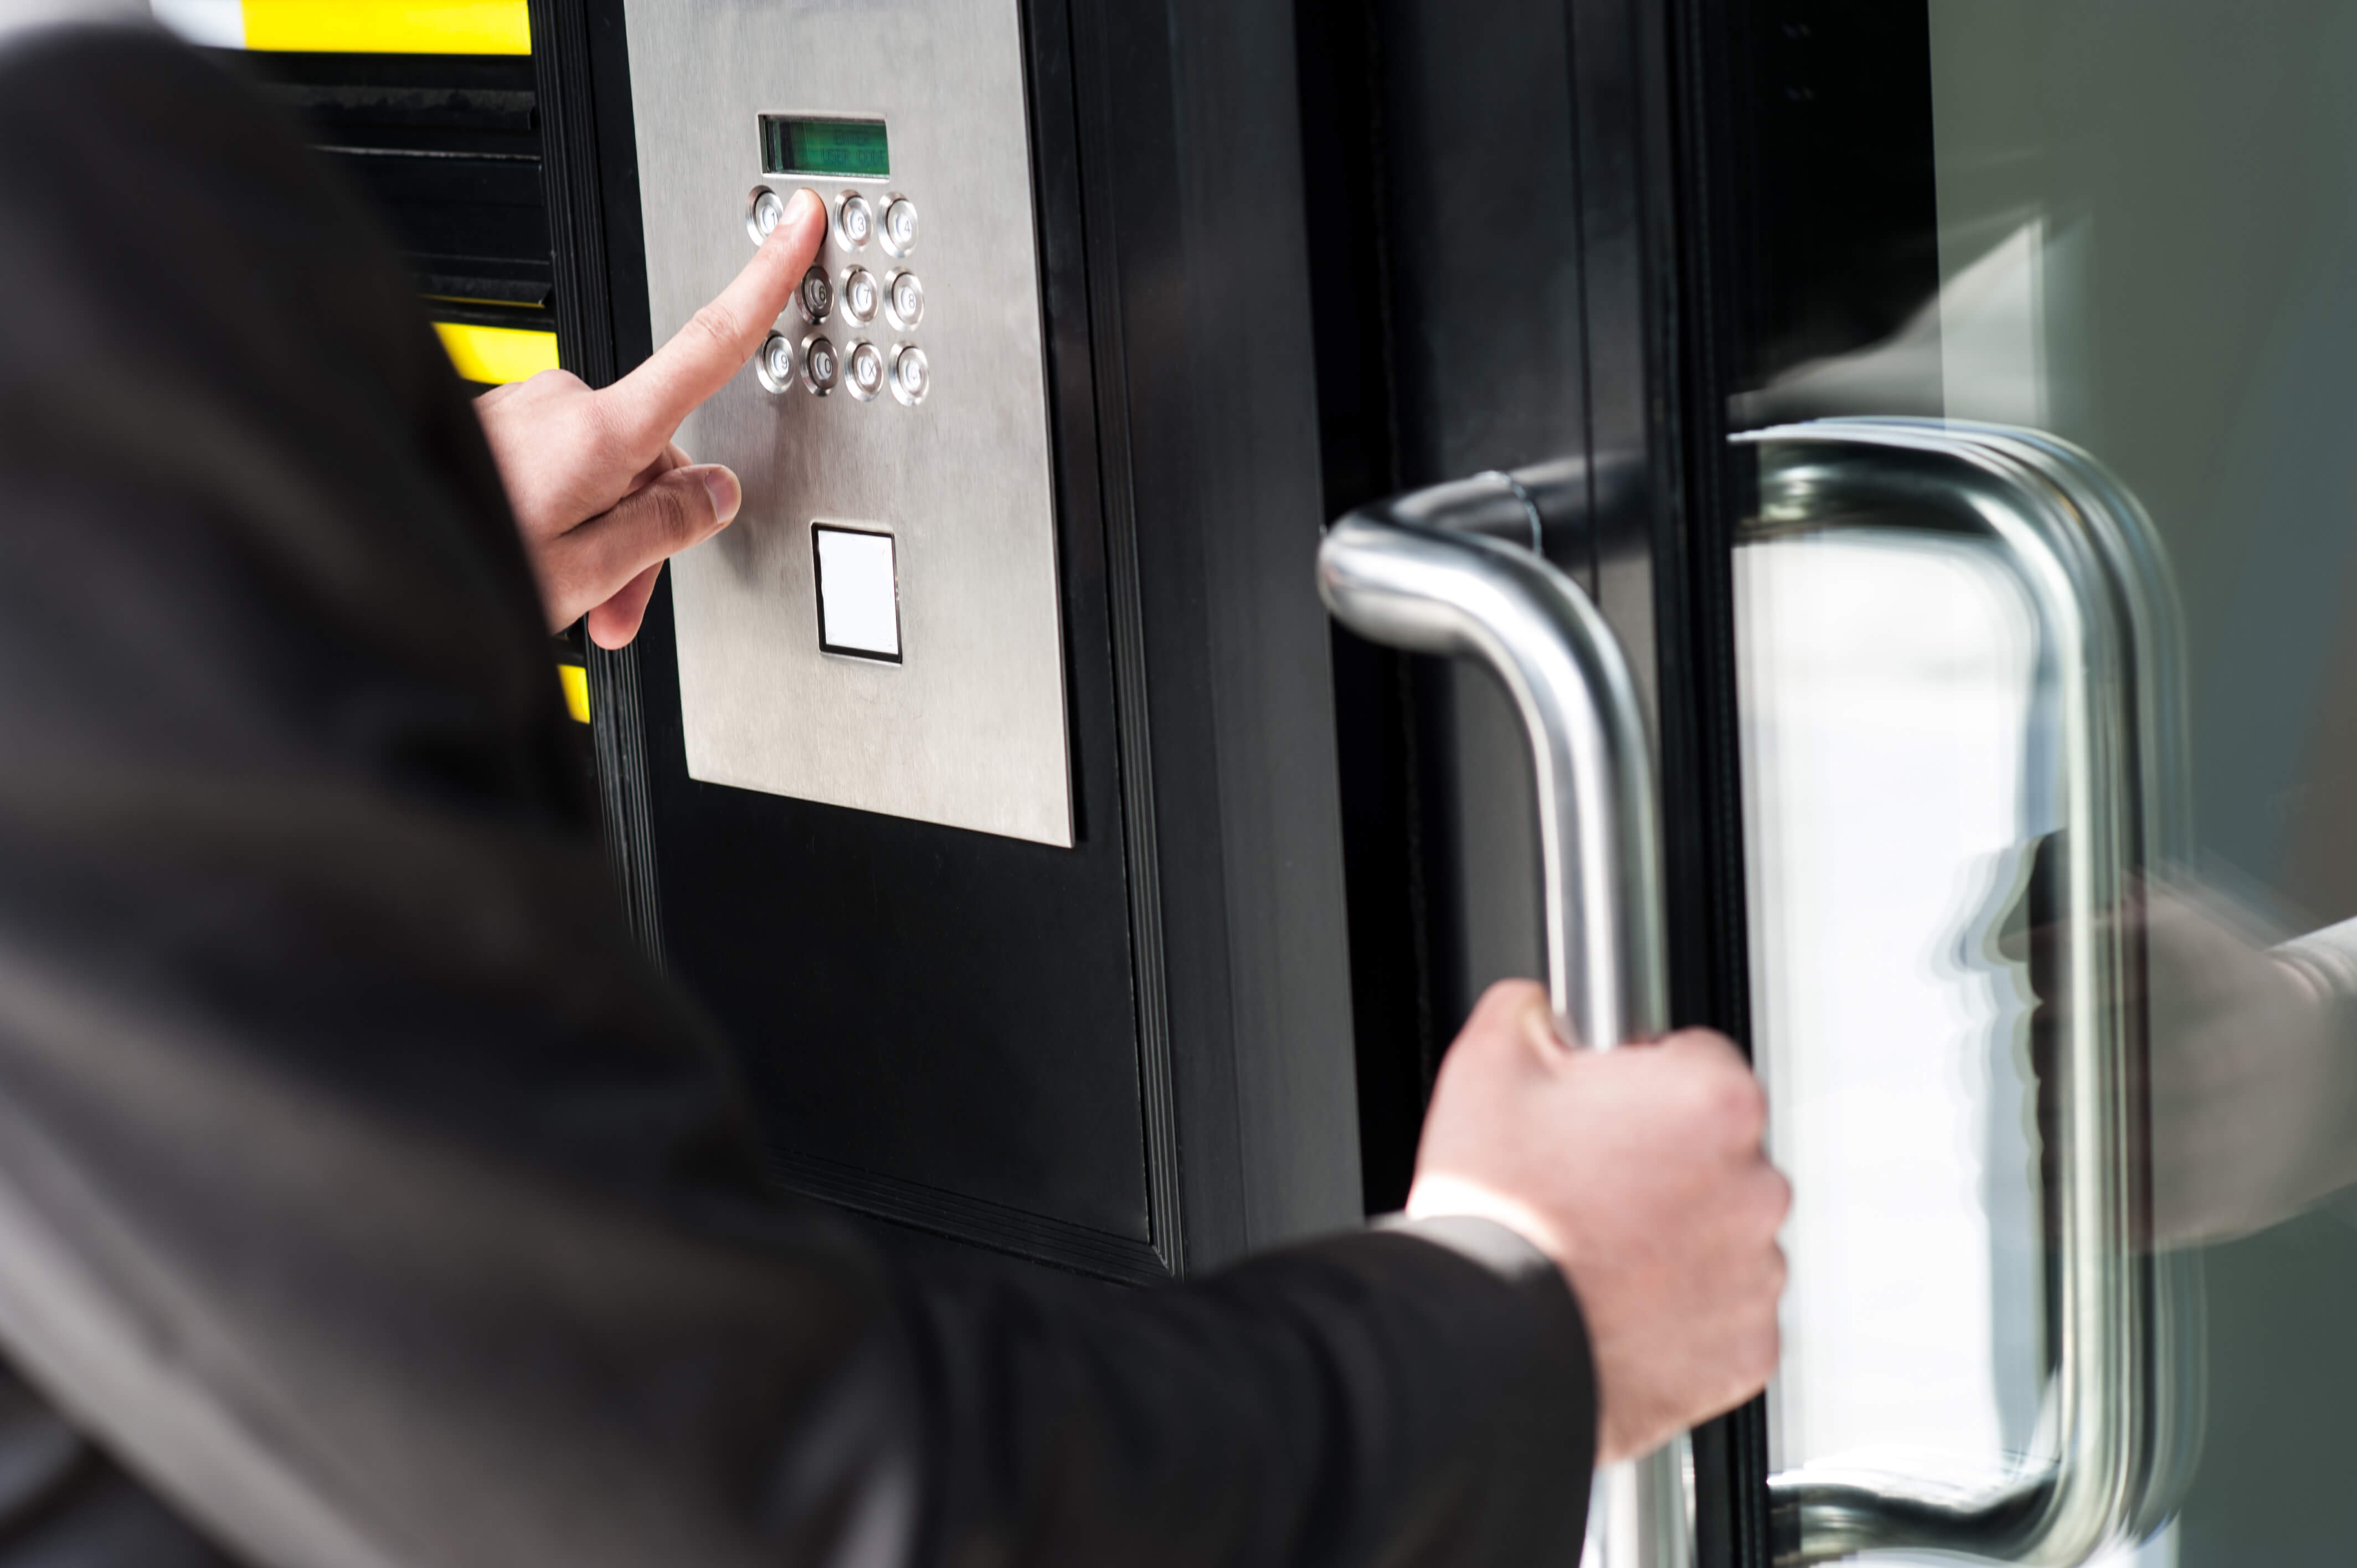 commercial telephone entry system